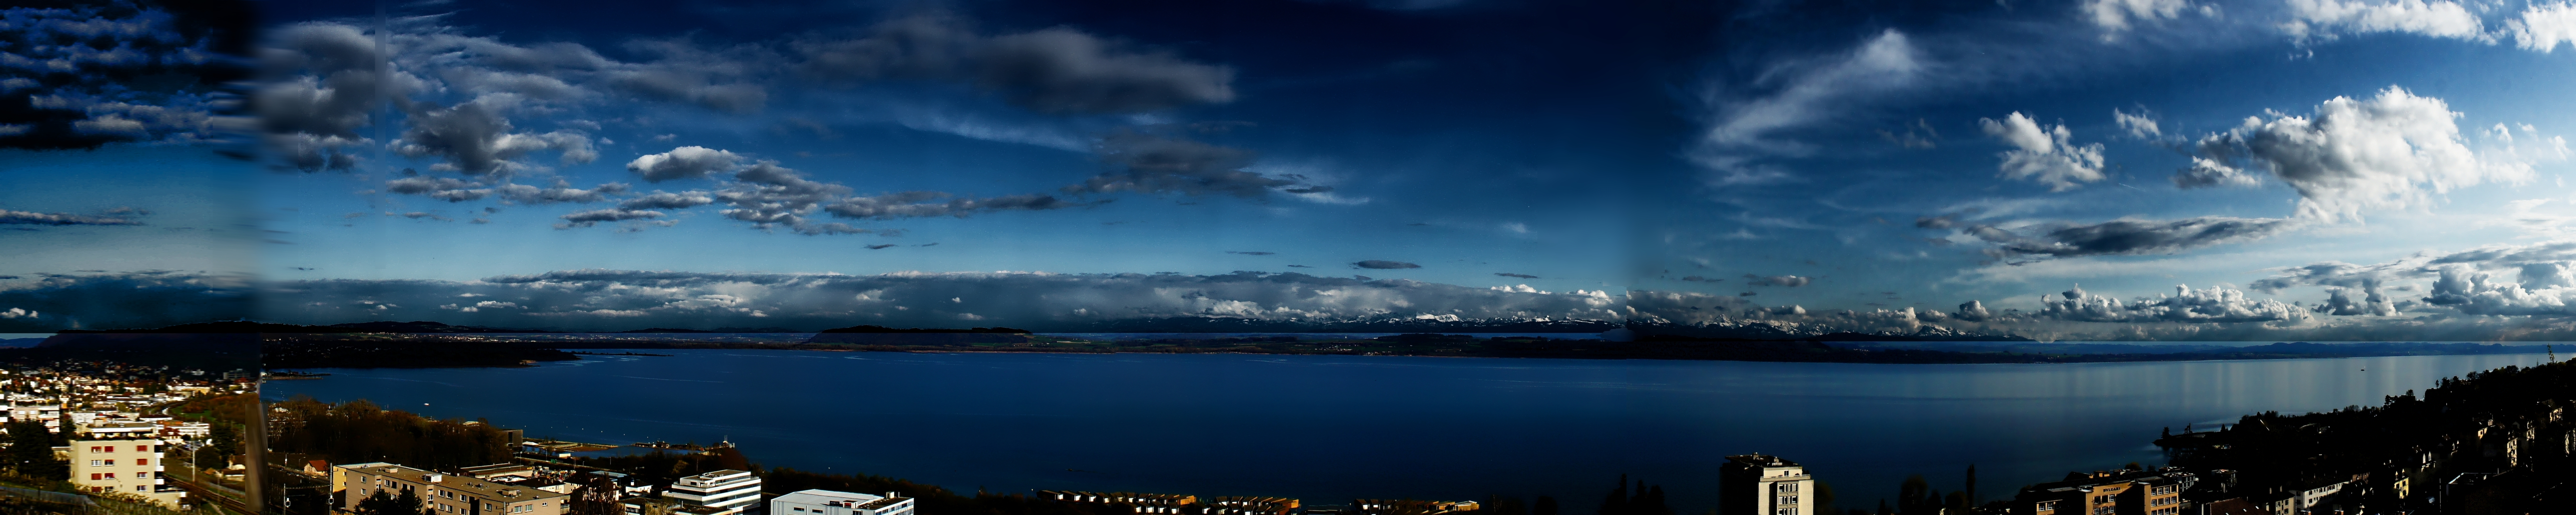 Panoramique landscape by LucienWittwer